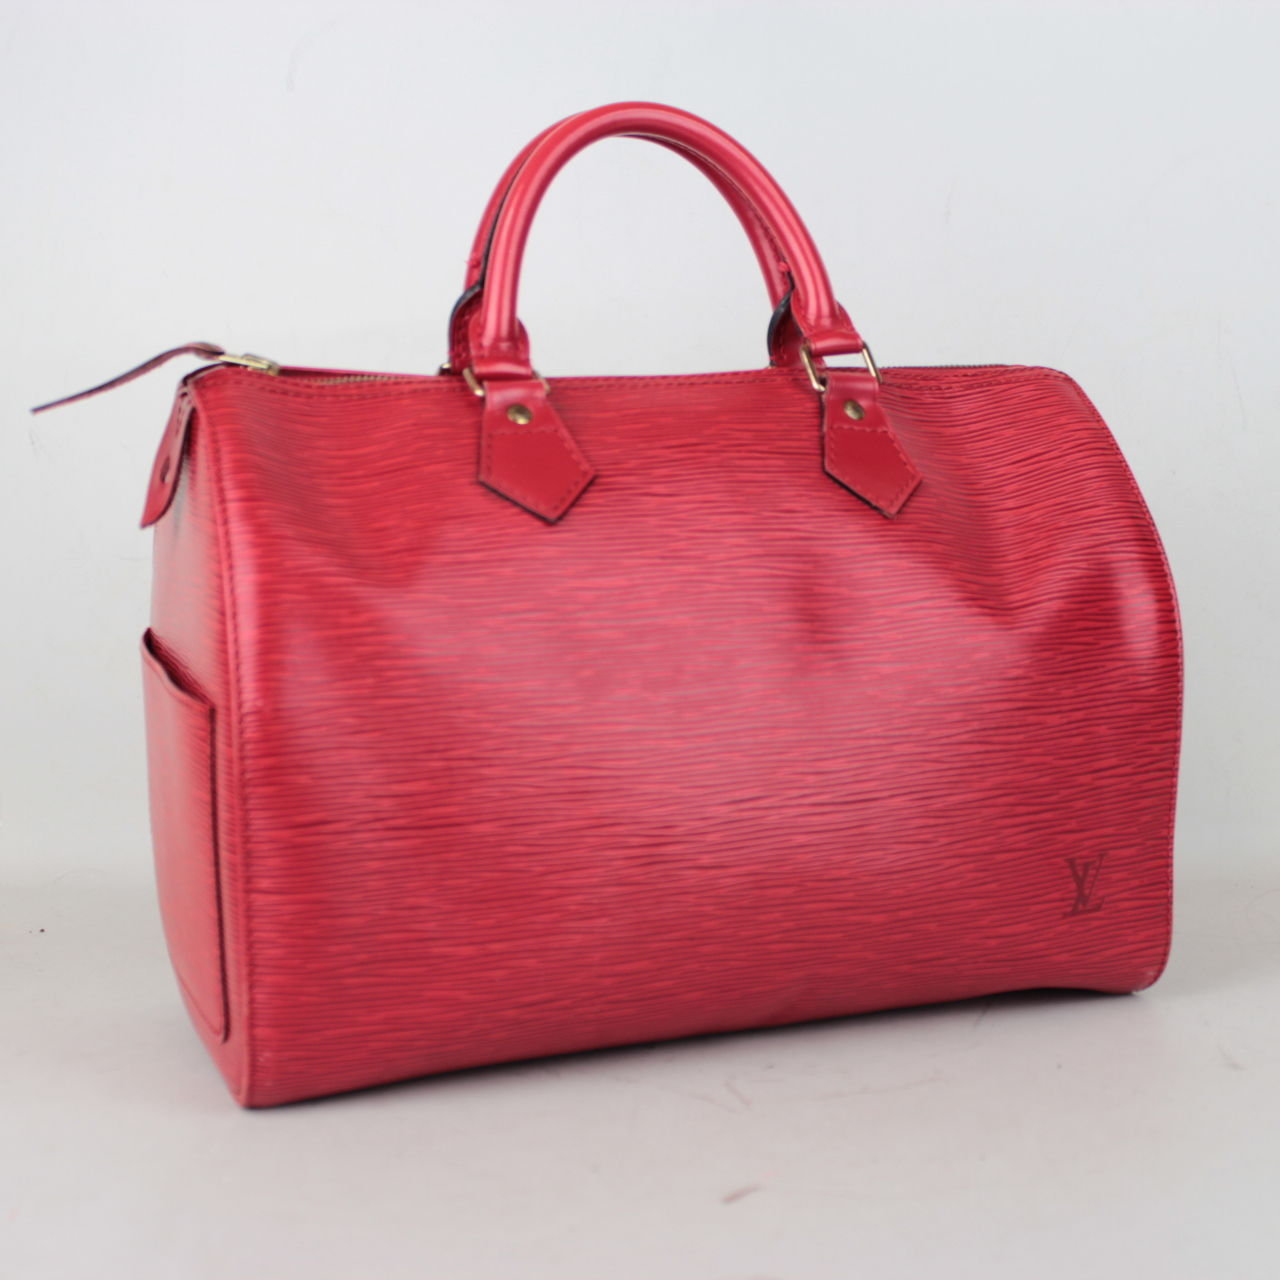 c7d8dd2ea3 Louis Vuitton Red Epi Leather Speedy 30 Handbag - Luxurylana ...